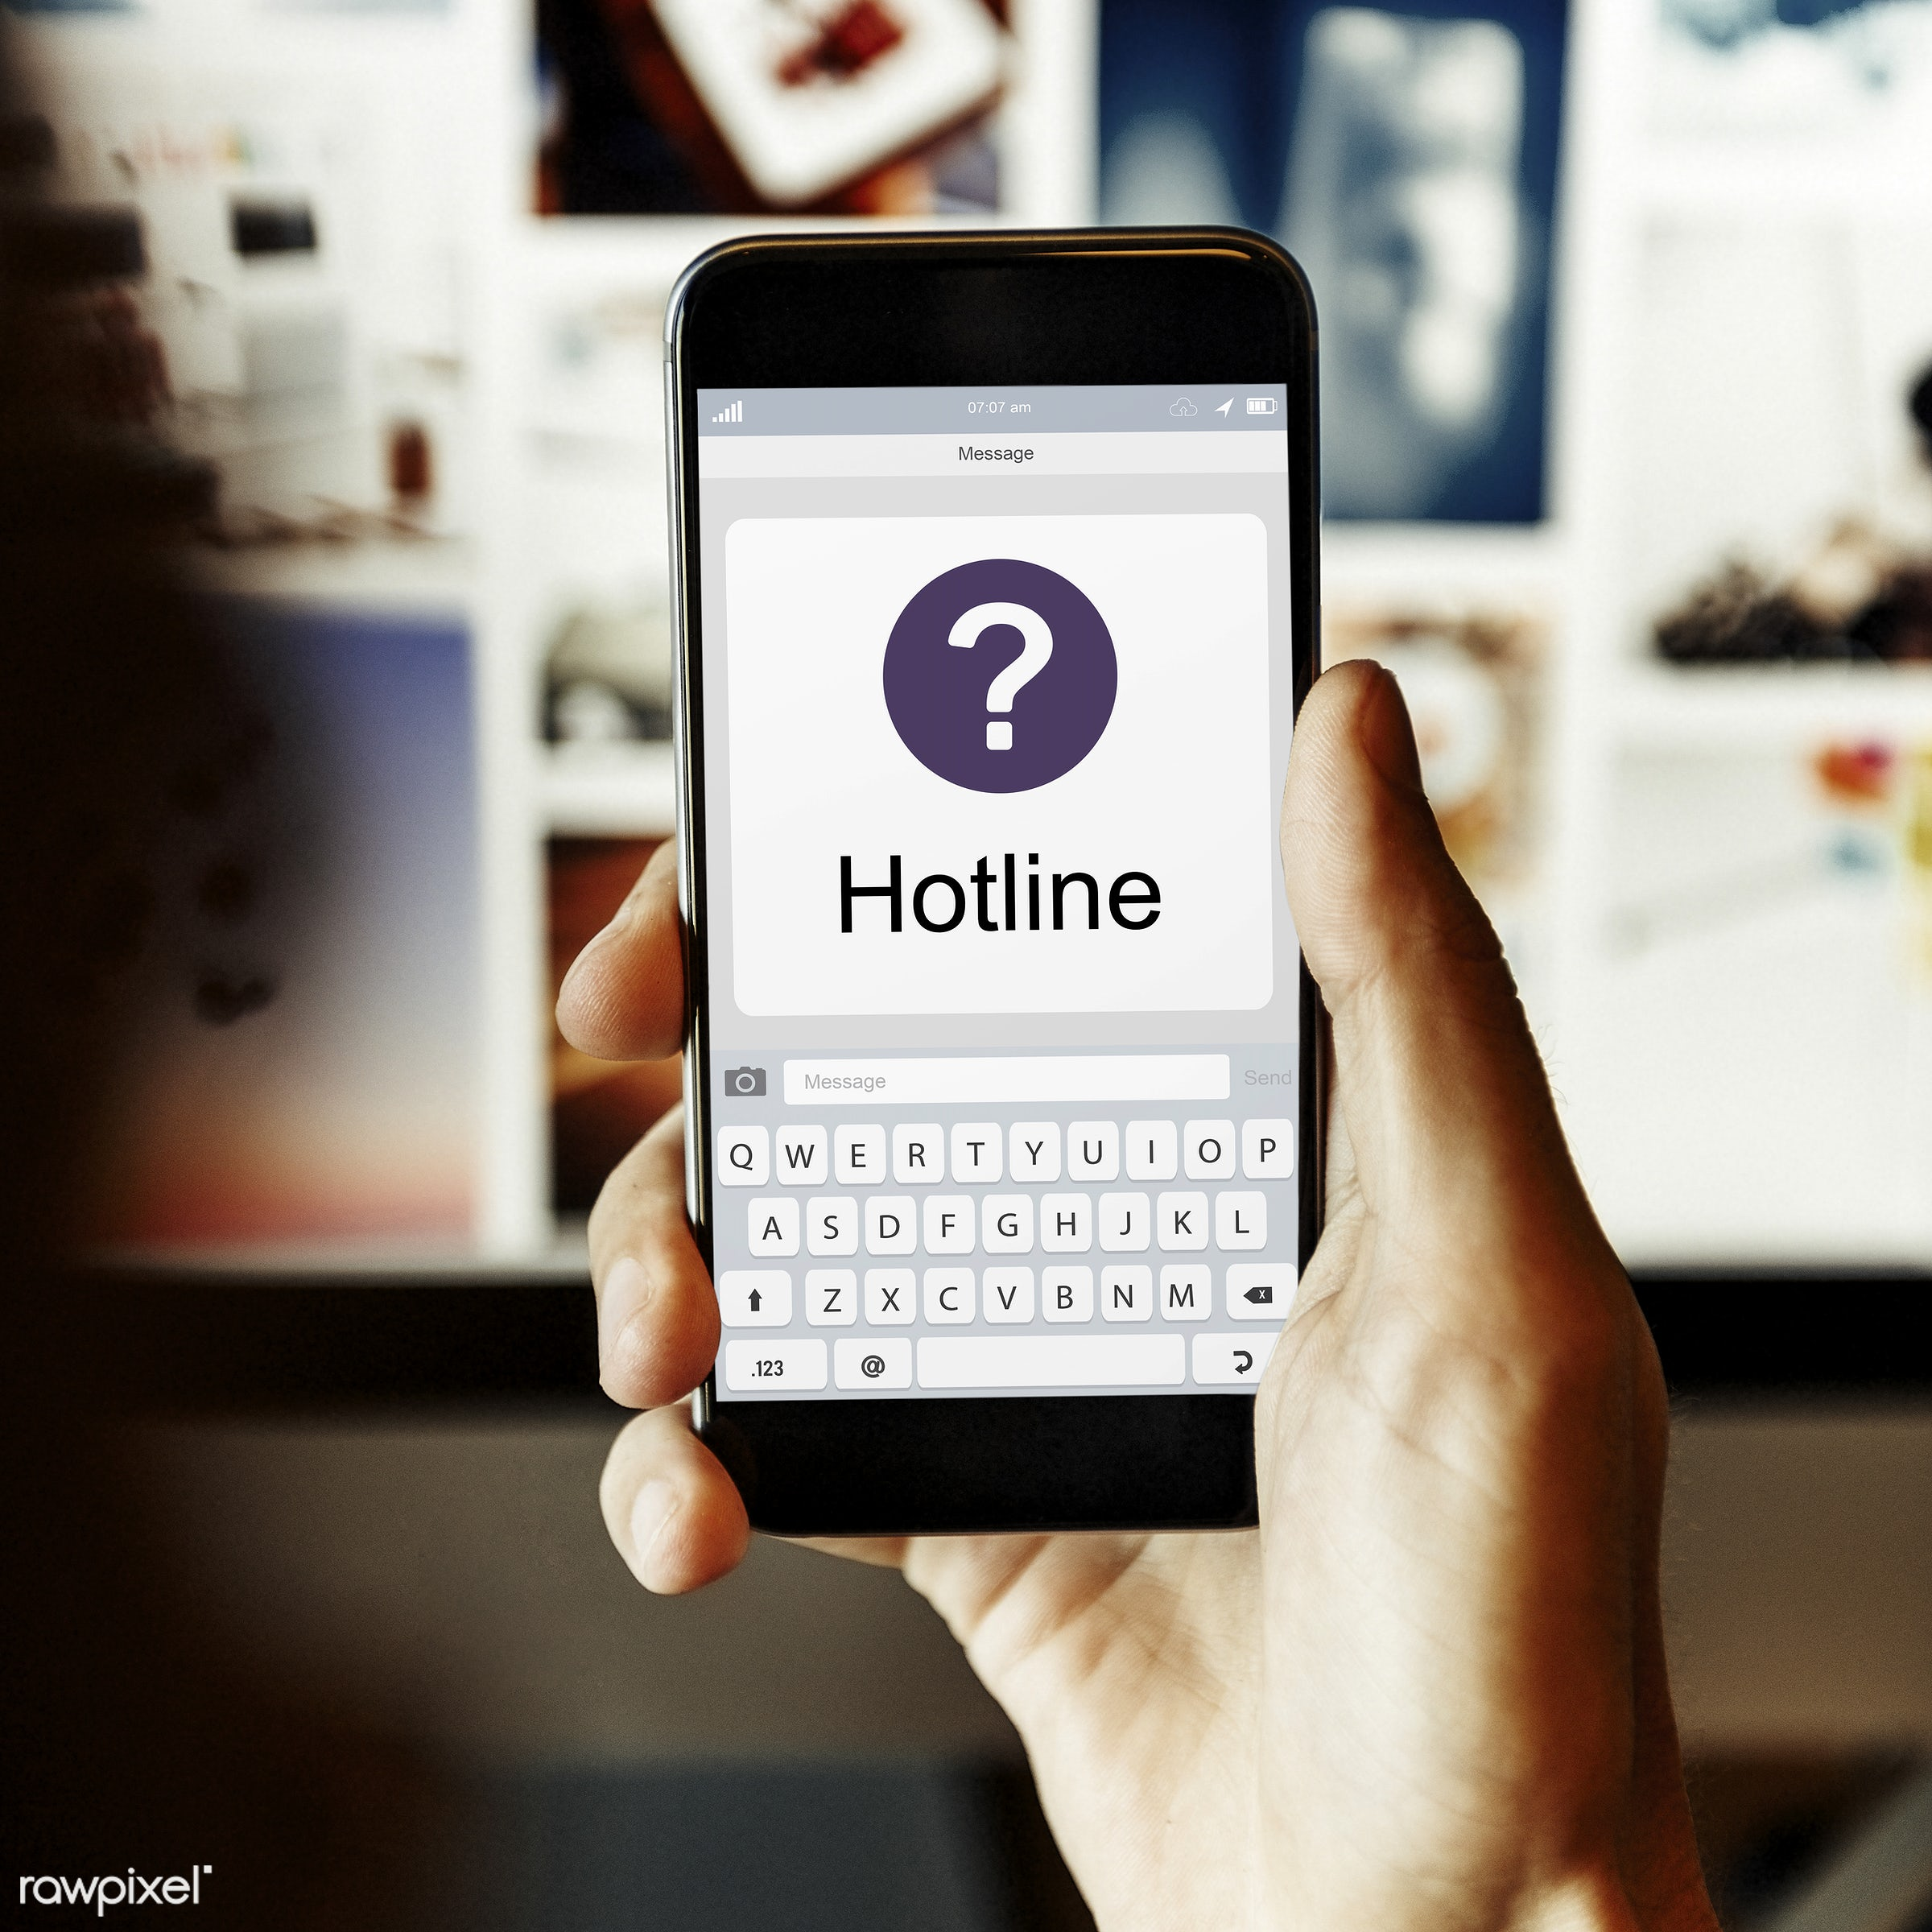 answer, ask us, assistance, blog, browsing, call, center, communication, connect, contact, digital device, faq, help, help...